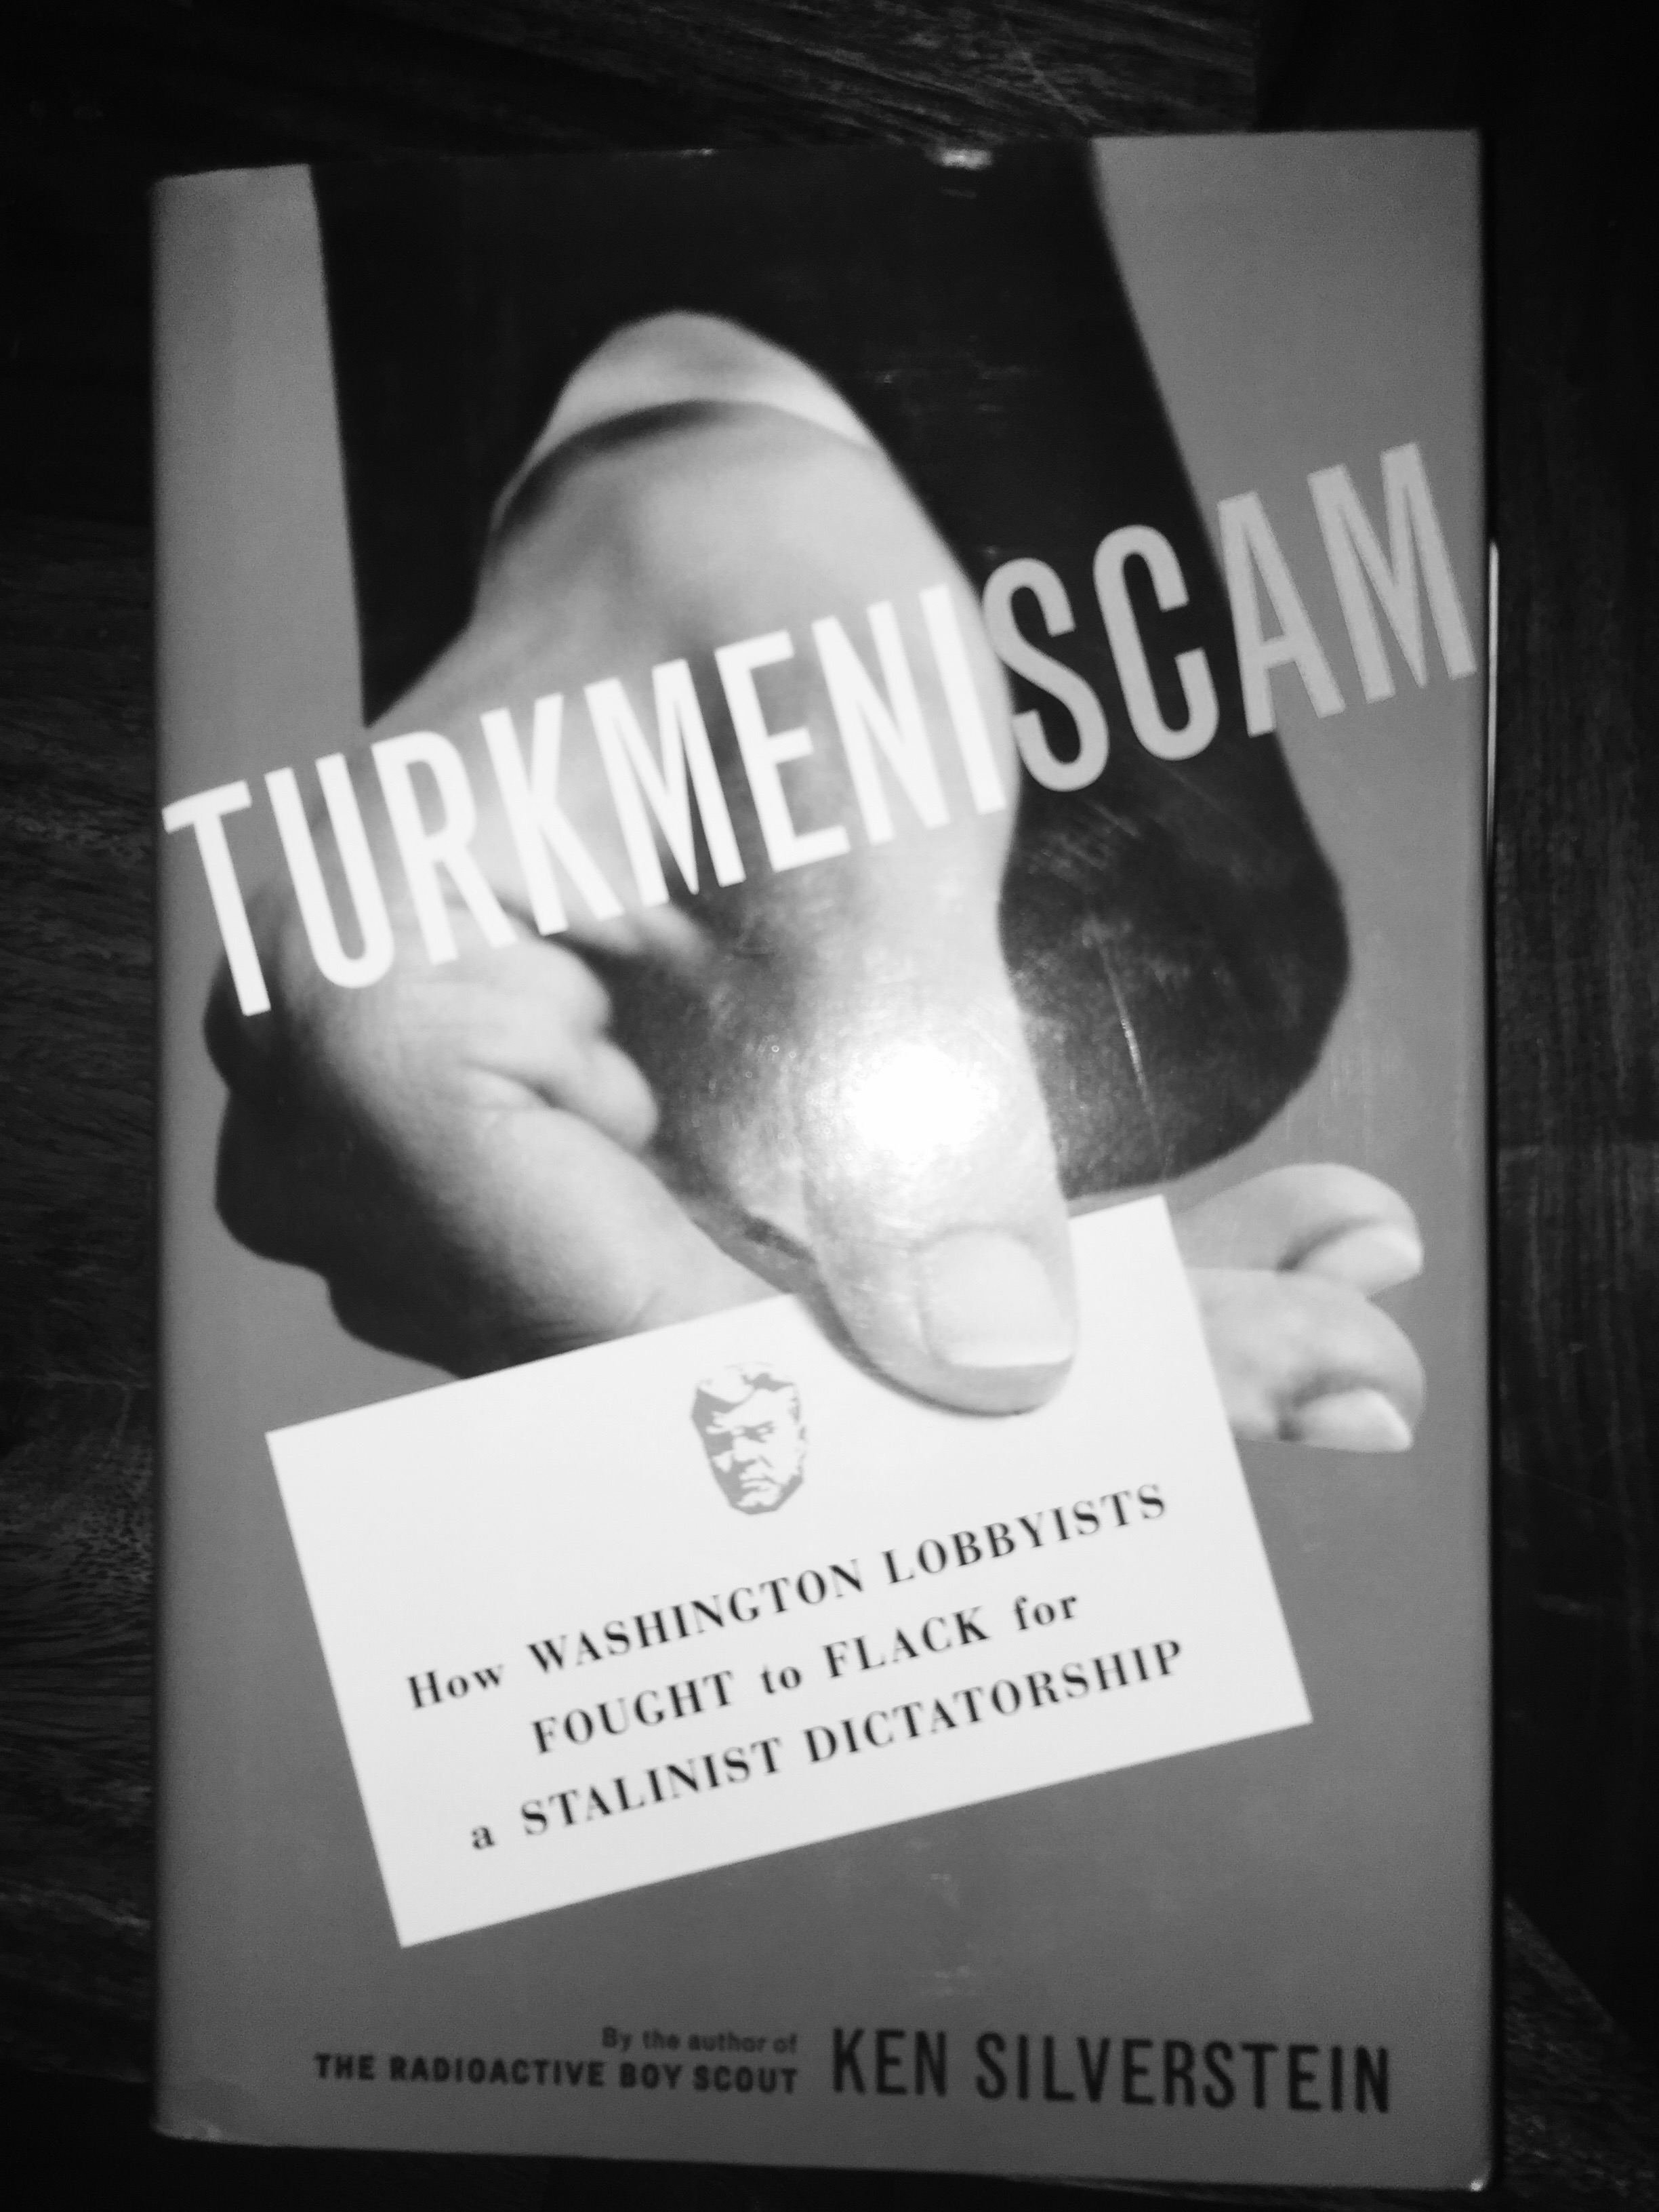 Book cover Turkminiscam How Washington Lobbyists Sought to Flack for a Stalinist Dictatorship